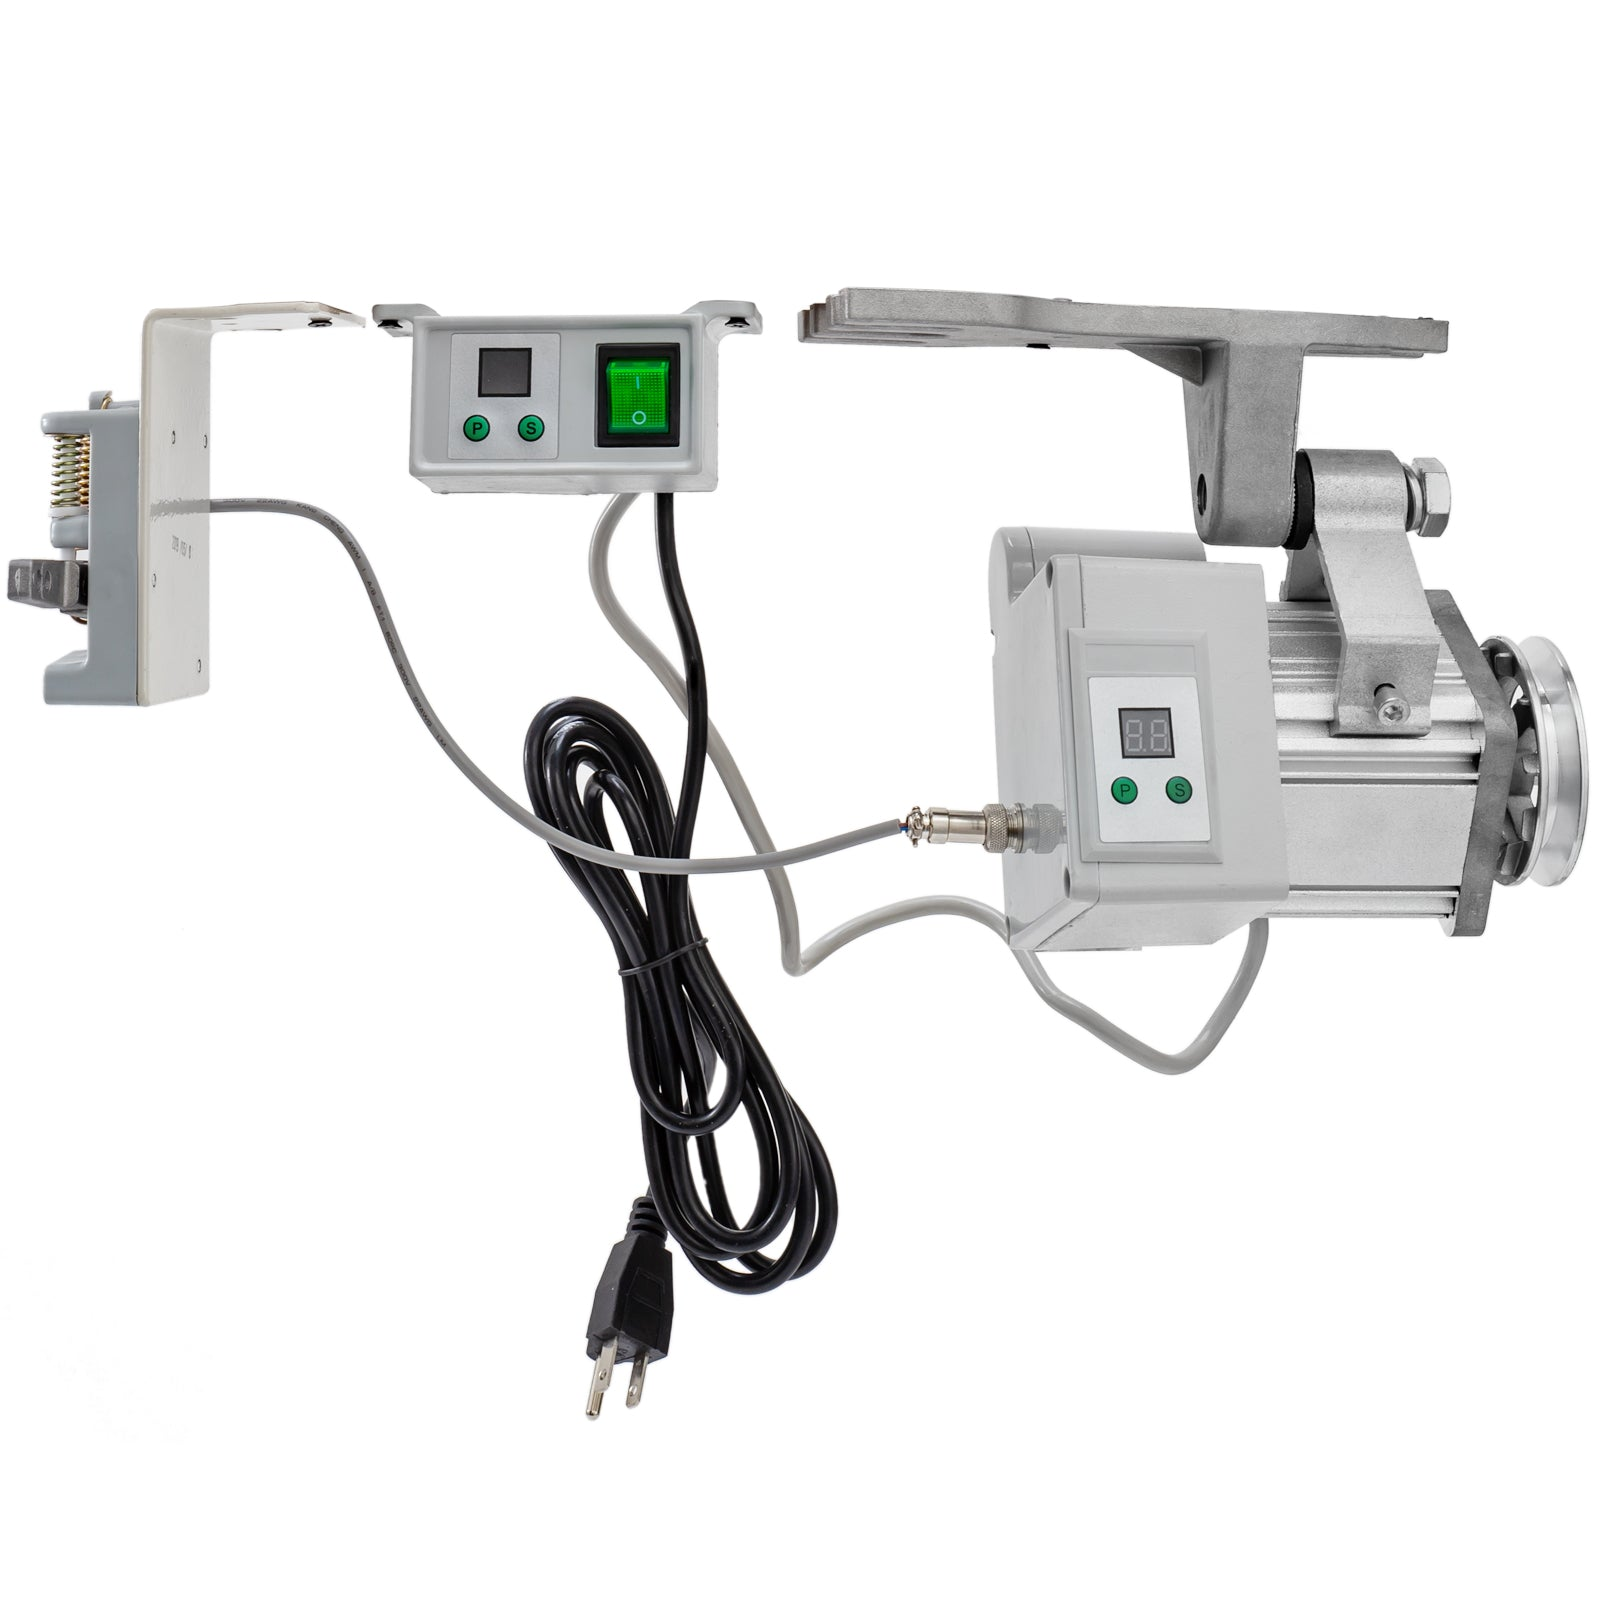 400w 220v Energy Saving Brushless Servo Motor For Industrial Sewing Machine